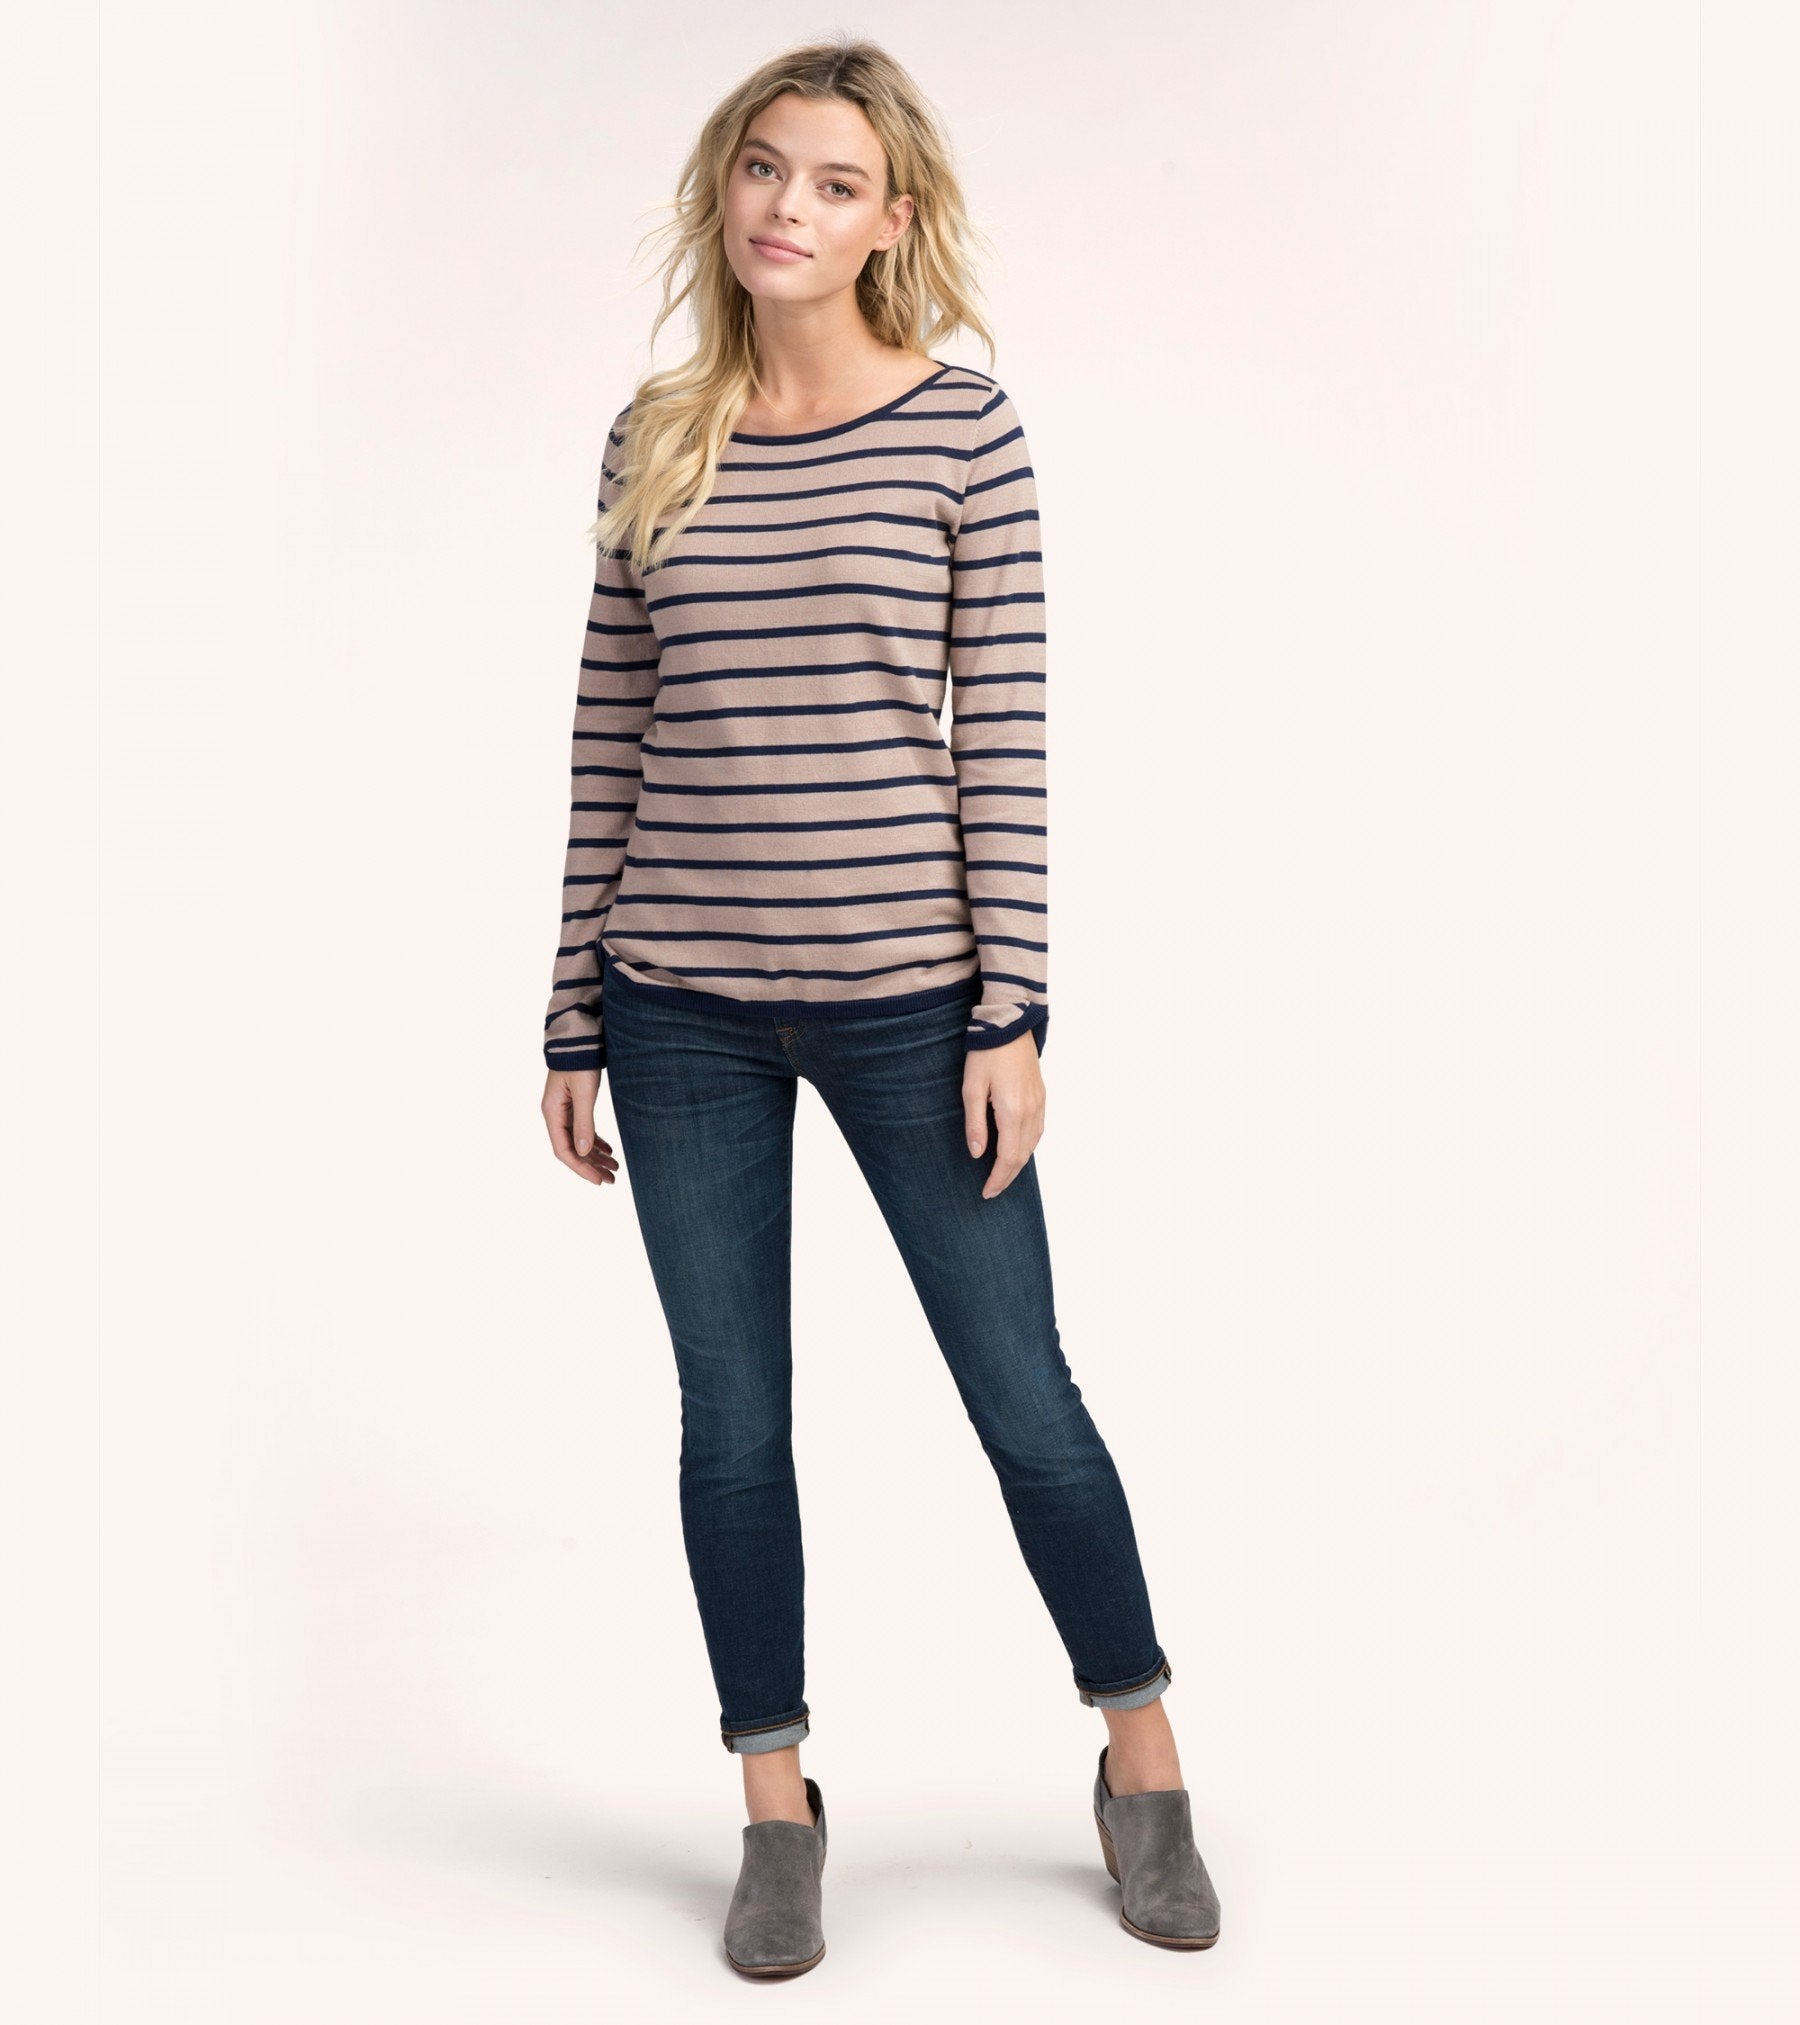 HATLEY Breton Striped Knit Shirt